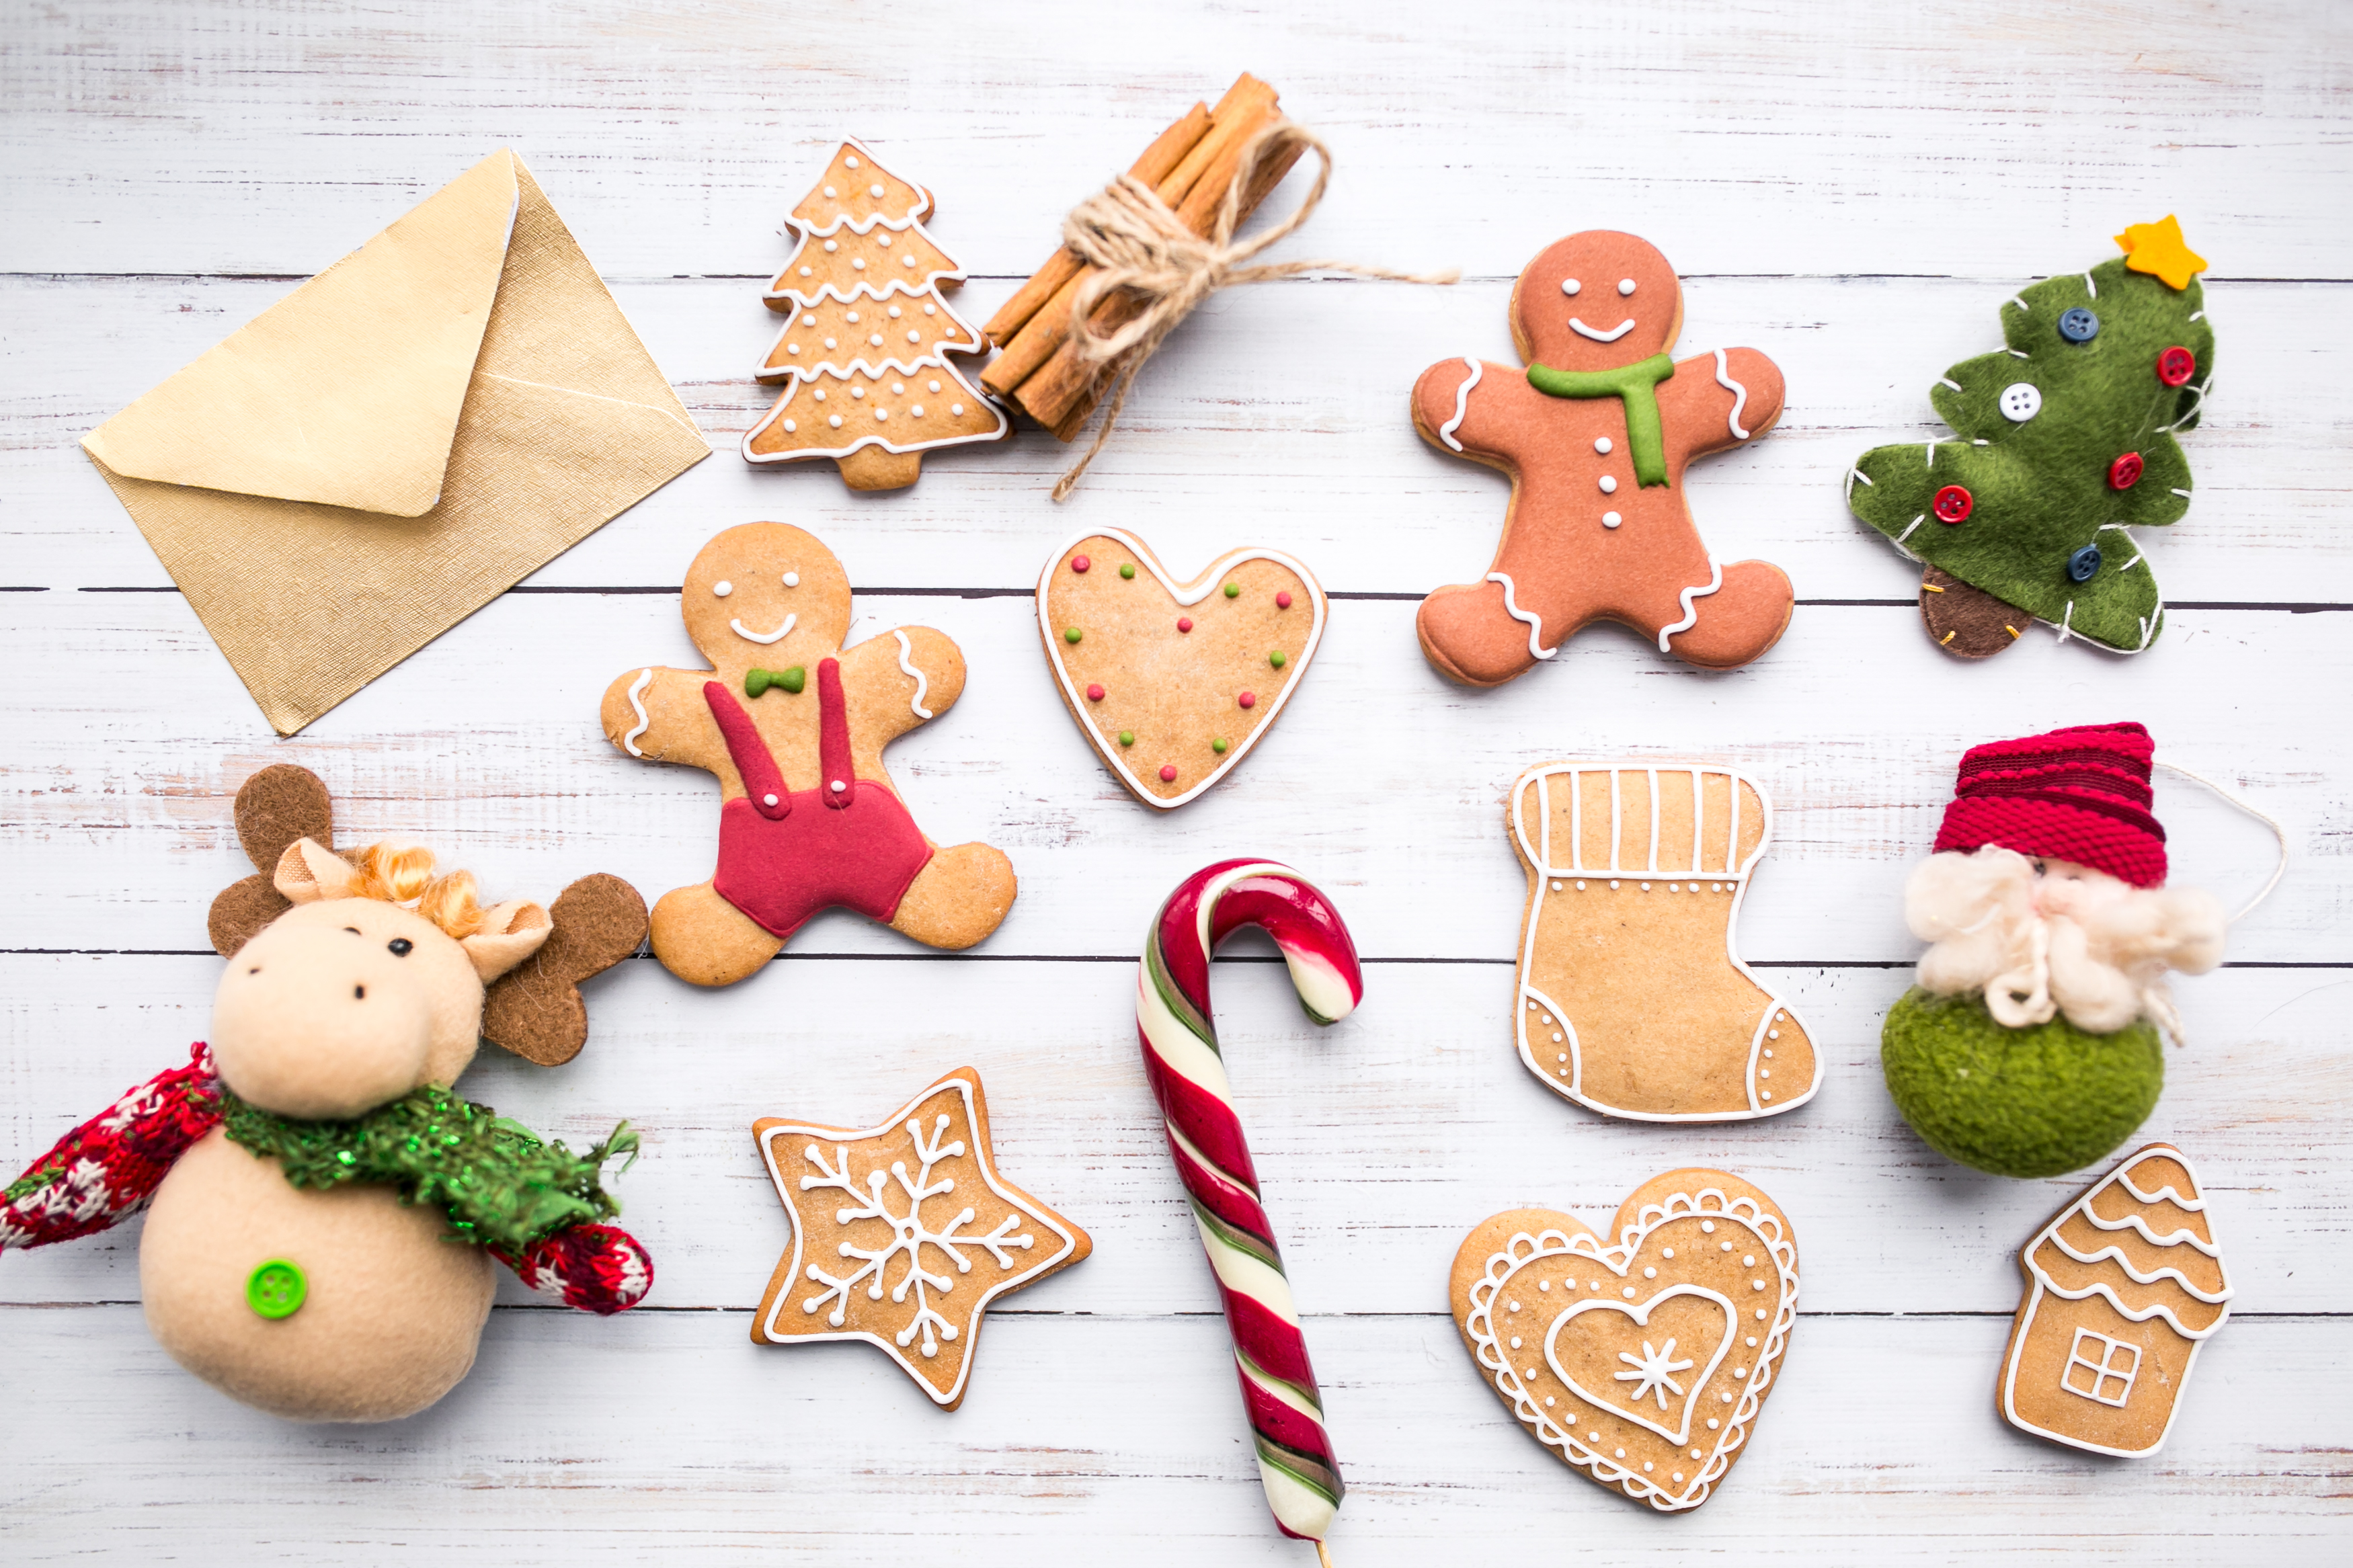 Business help for bakers and sweet treat makers. This is an image of Christmas cookies and treats.